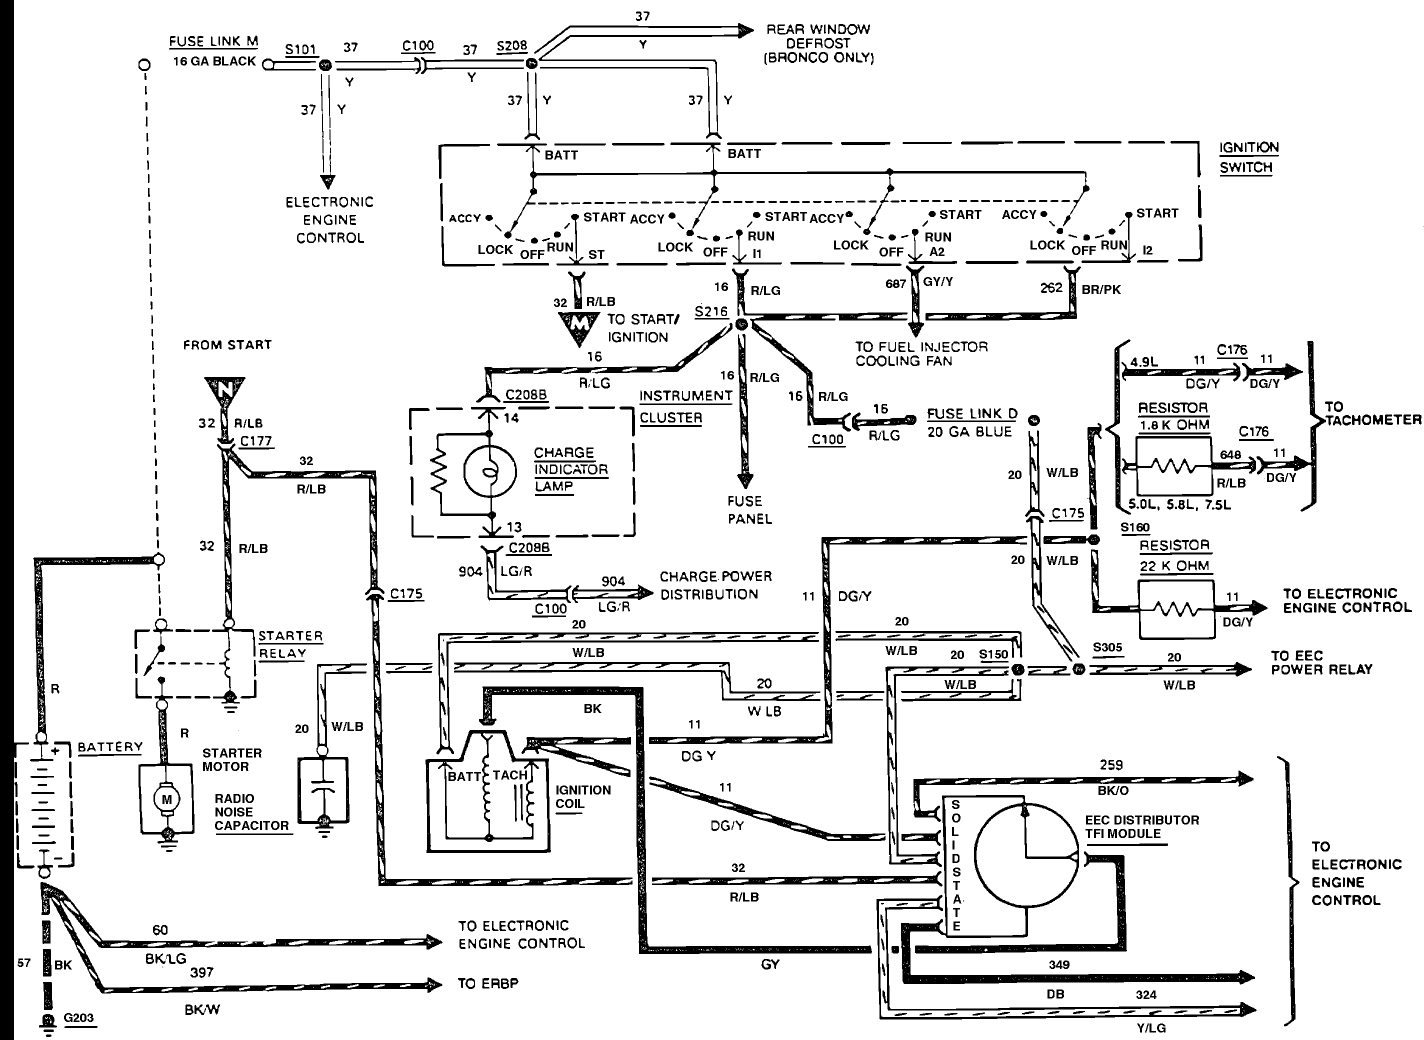 1988 Ford F 150 Basic Ignition Wiring 4 9 300 - Wiring Diagram ... Mallory Breakerless Wiring Diagram on